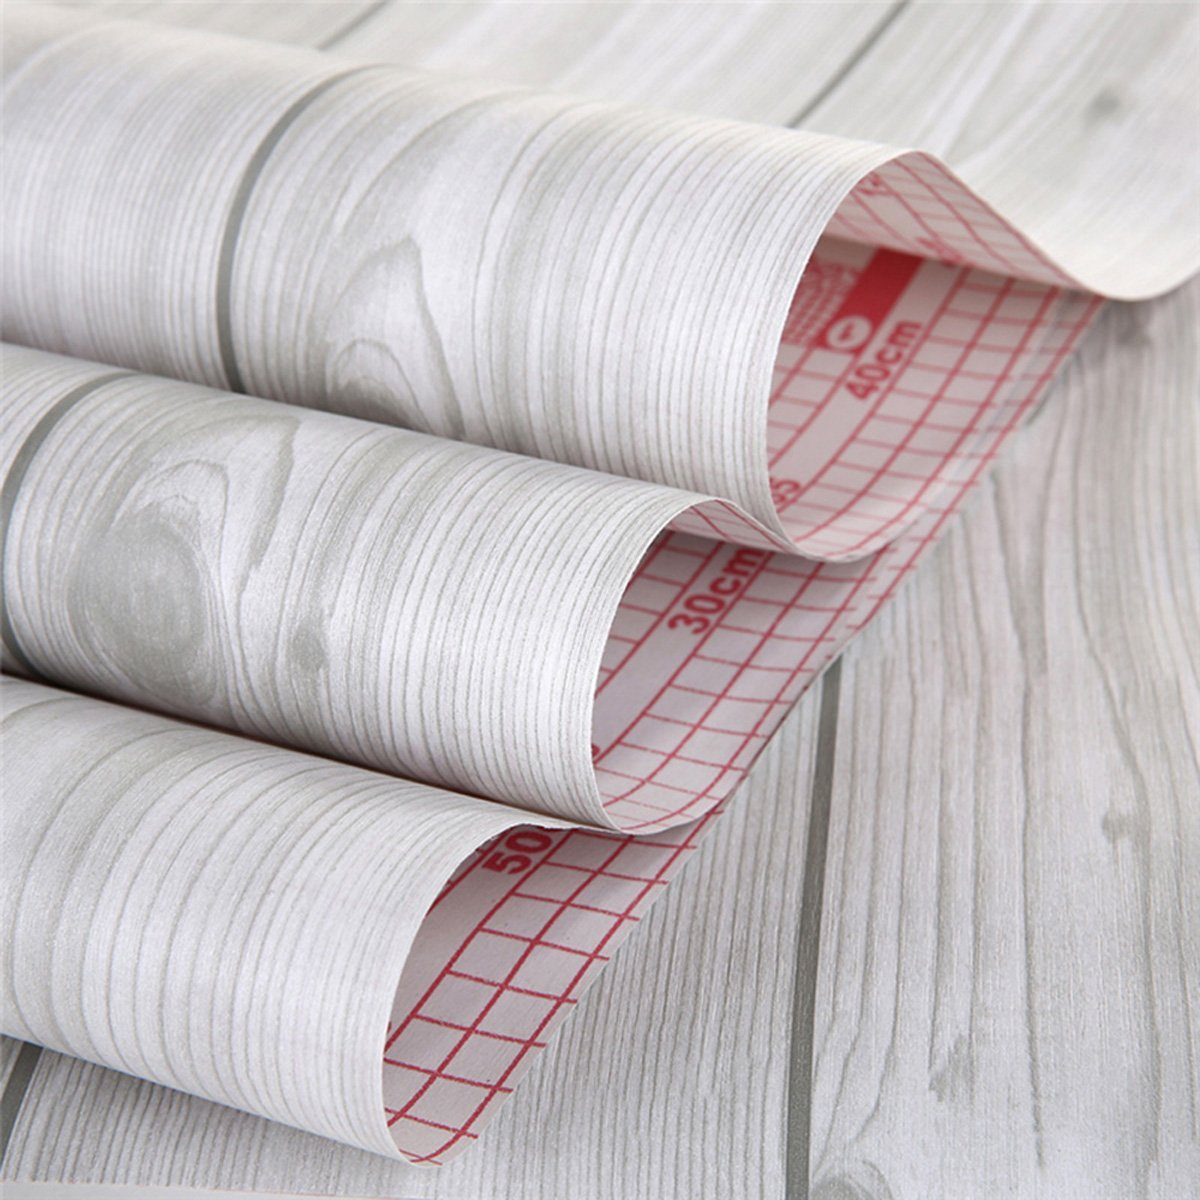 Decorative wood grain contact paper self adhesive shelf for Adhesive covering for kitchen cabinets